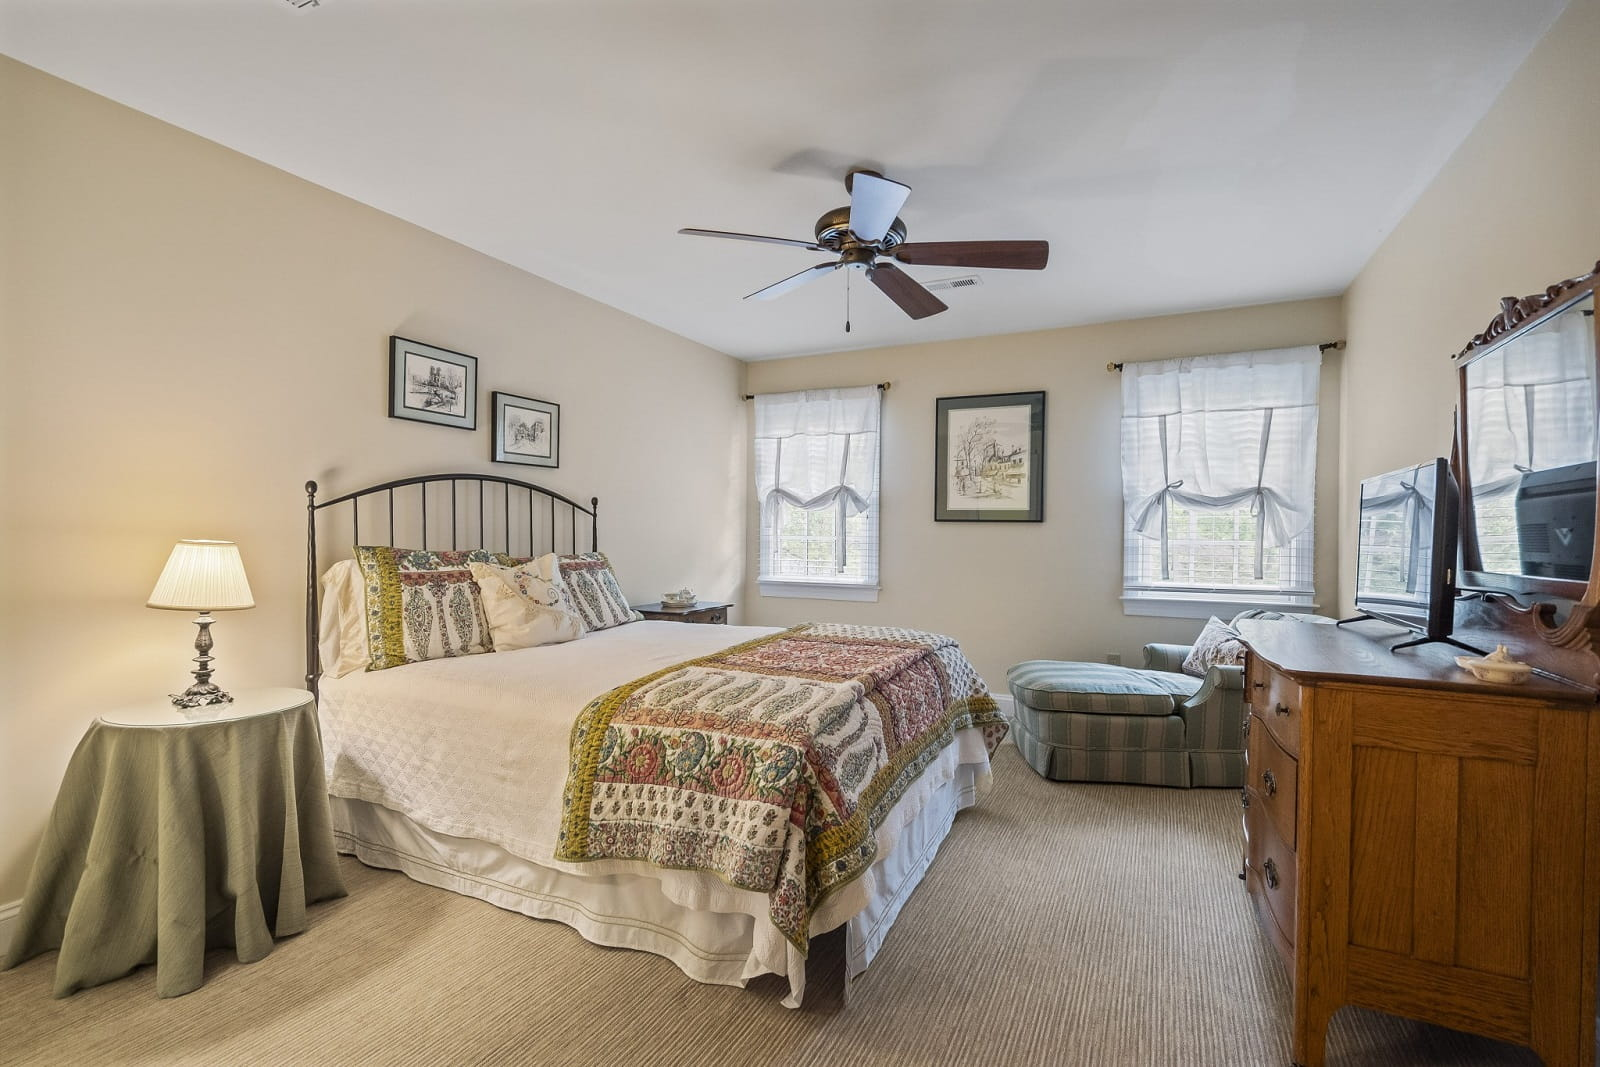 Real Estate Photography in Fredericksburg - Bedroom View